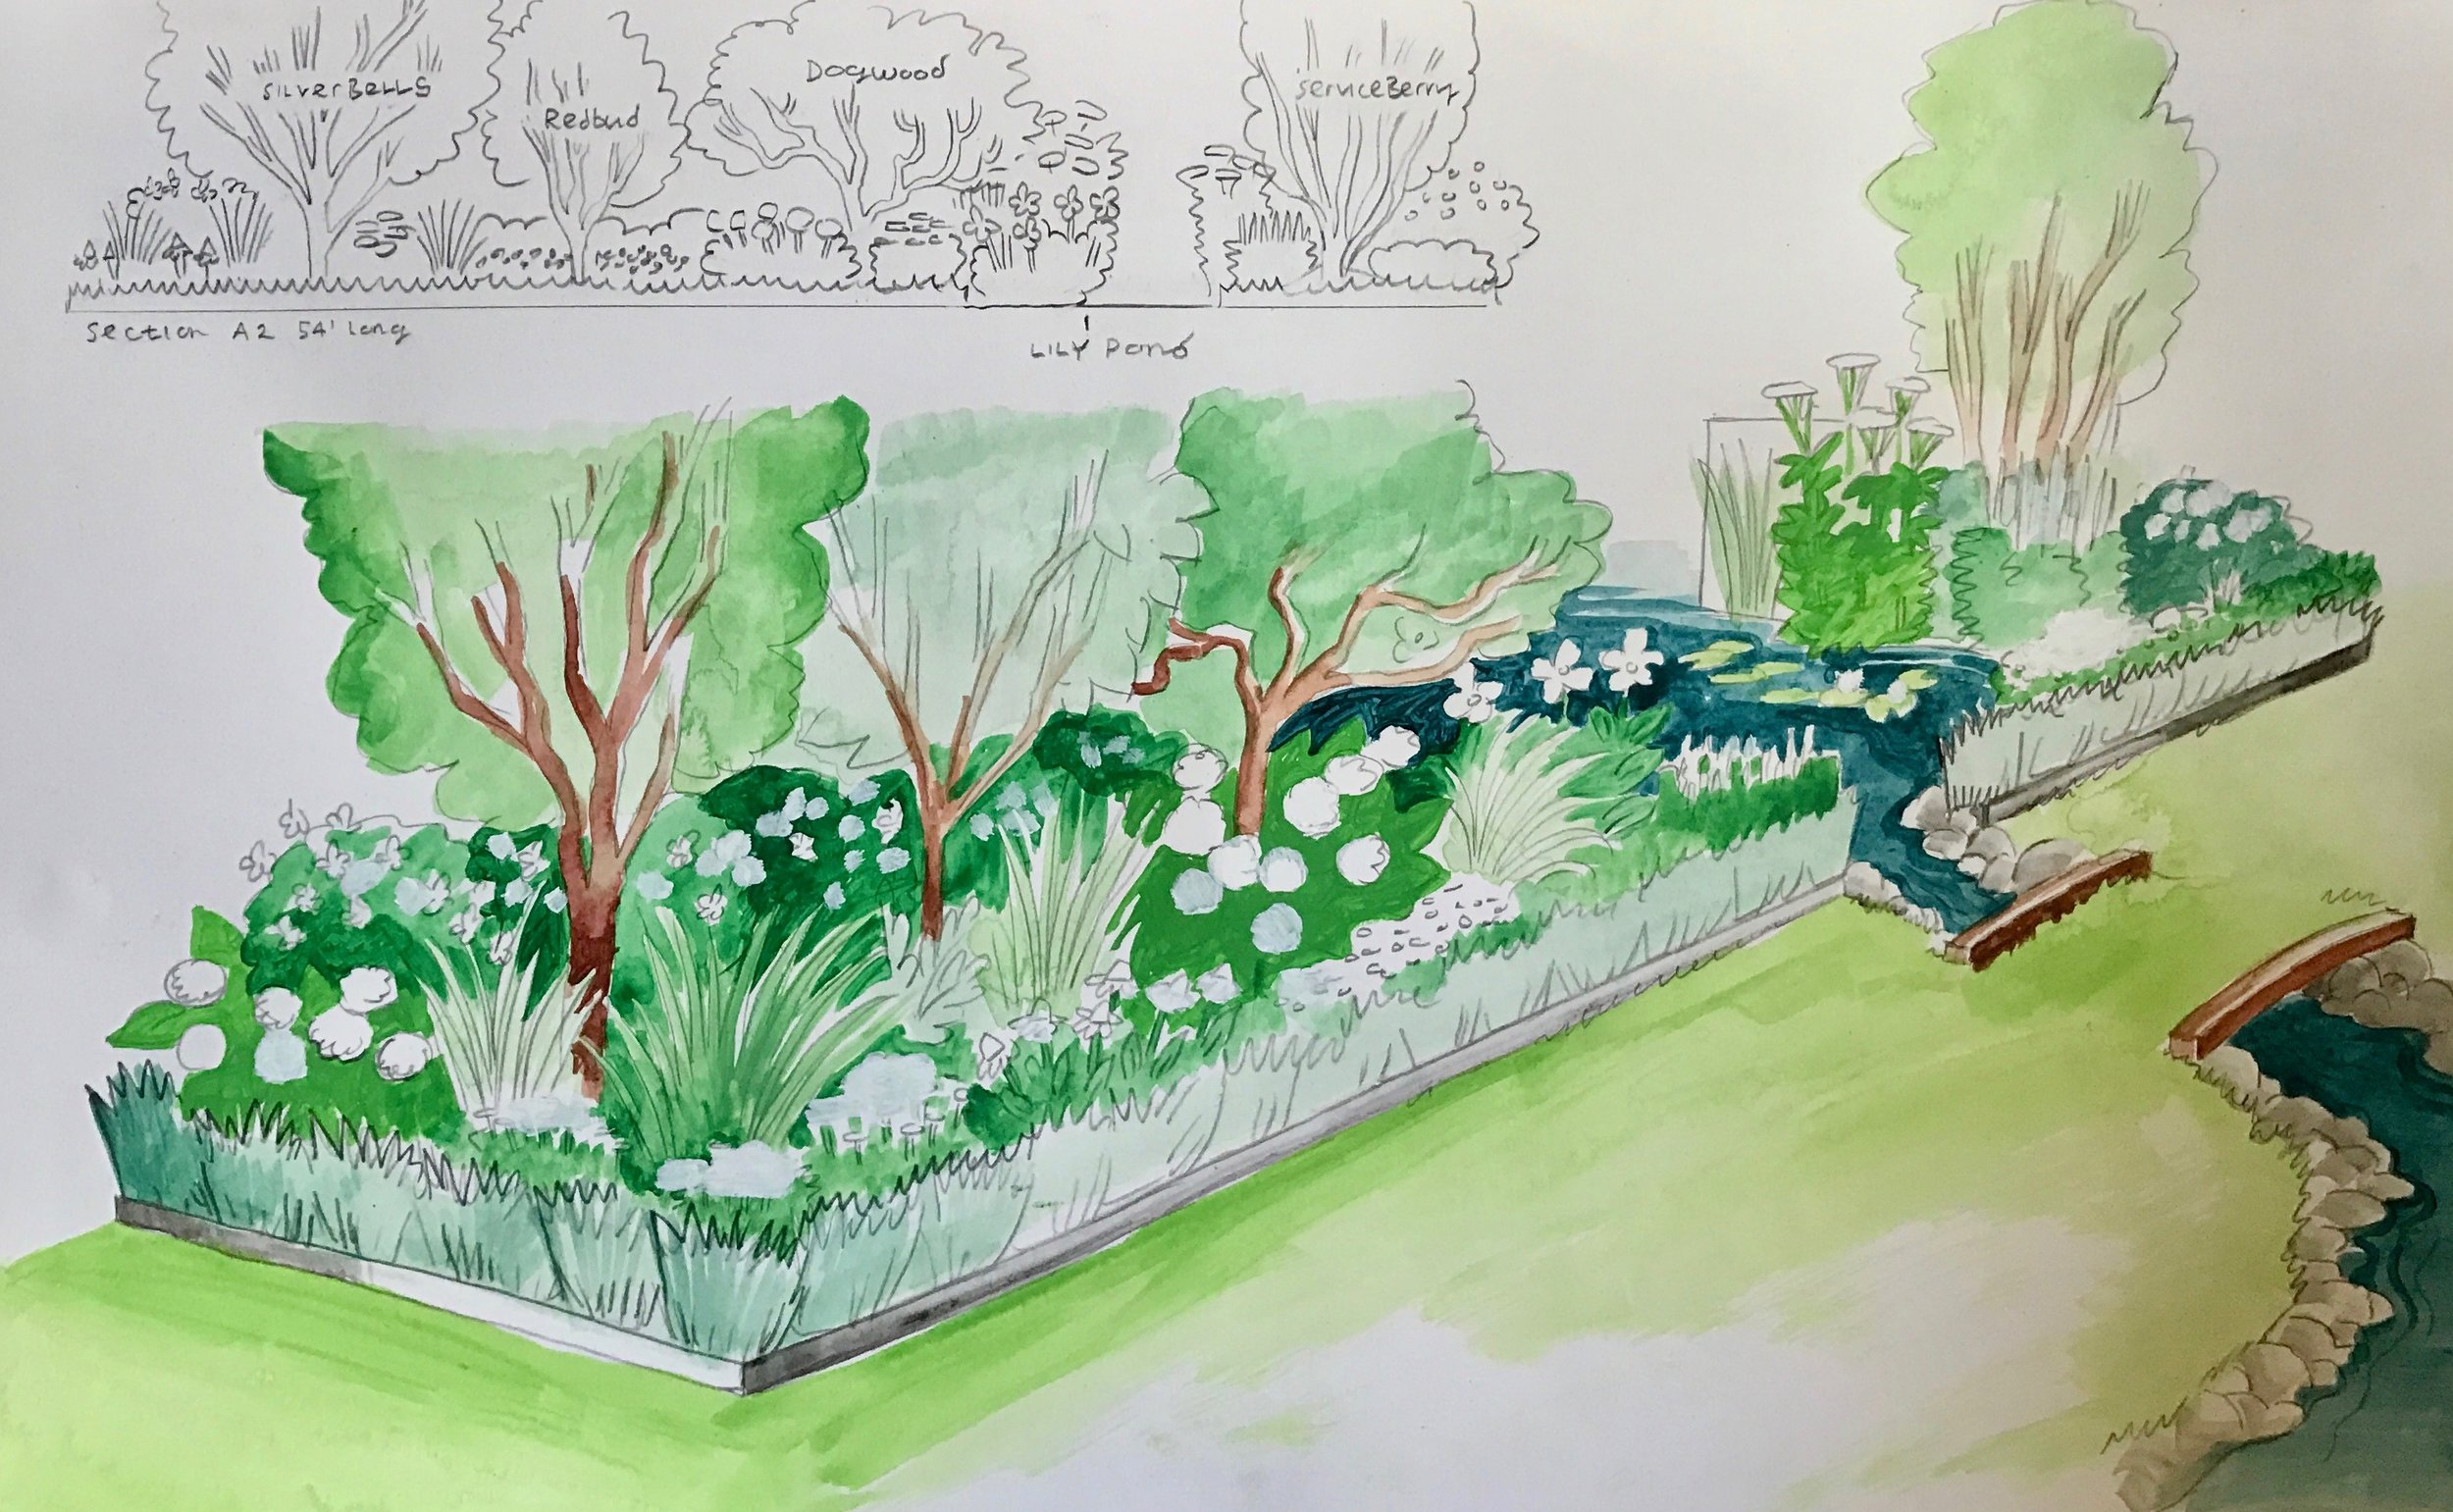 The Wedding Garden is defined by plant beds that will utilize a sophisticated composition of flowering trees, shrubs, perennials and grasses. There will be a formal edge and row of low grasses to contain a more contemporary plant arrangement. Naturalistic in deign in a similar way of the High Line.